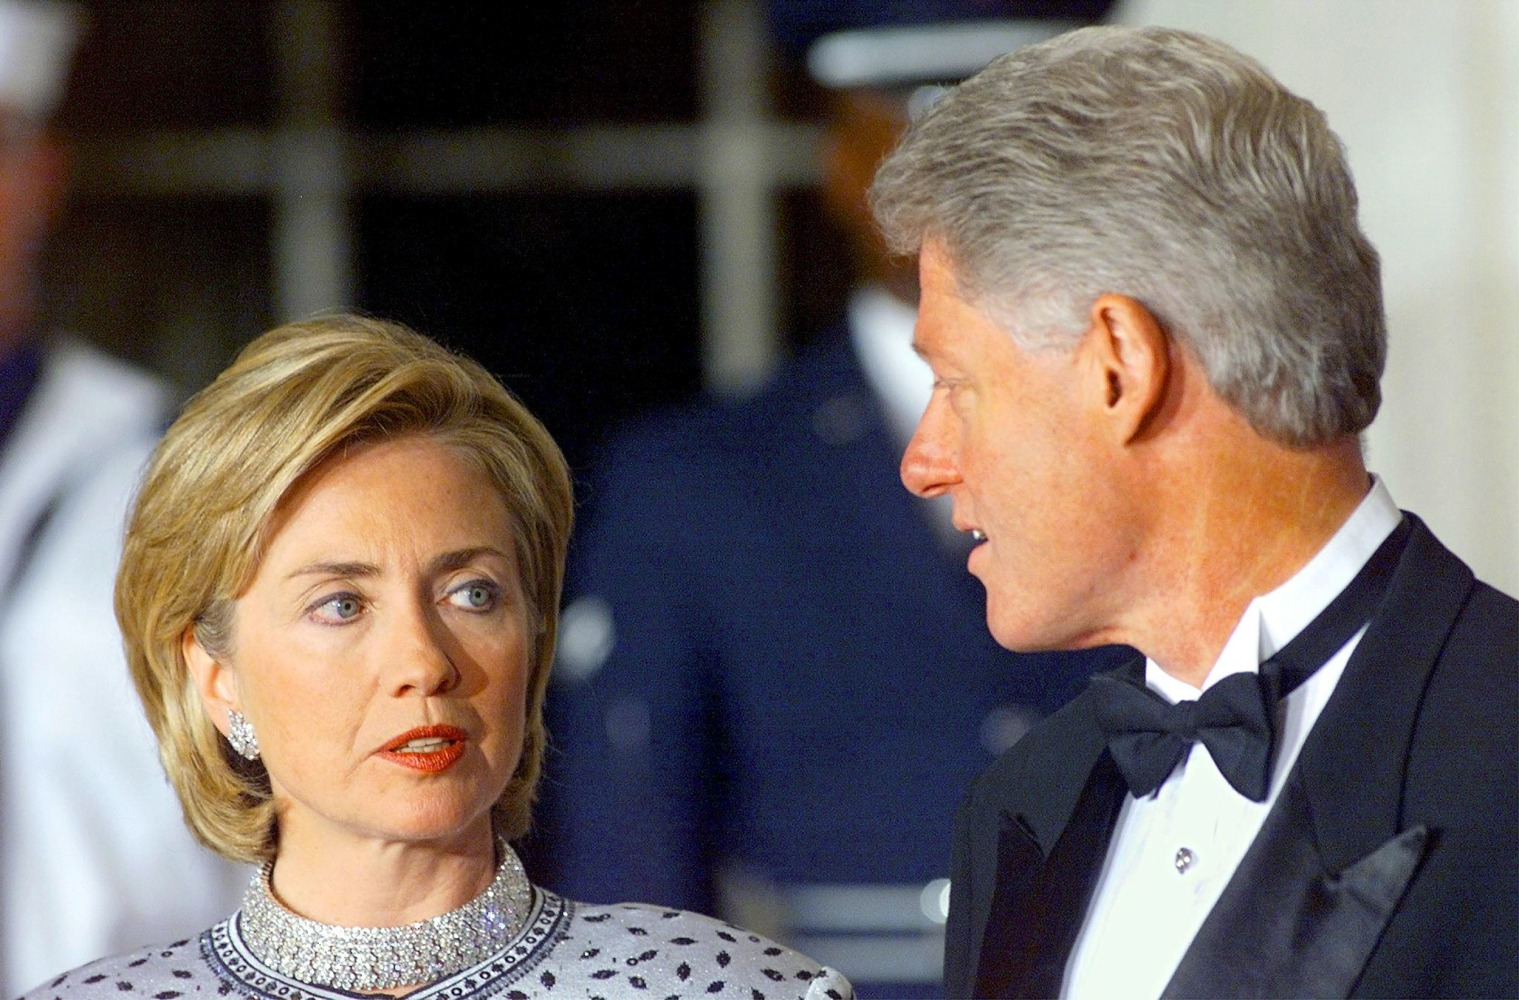 an analysis of the clinton sex scandal in the white house Bill clinton's big scandal technology, science, and the press create new precedents for cheating politicians imagine if bill clinton's infamous affair with 22 year old white house intern monica lewinsky had taken place thirty years earlier, in 1968.